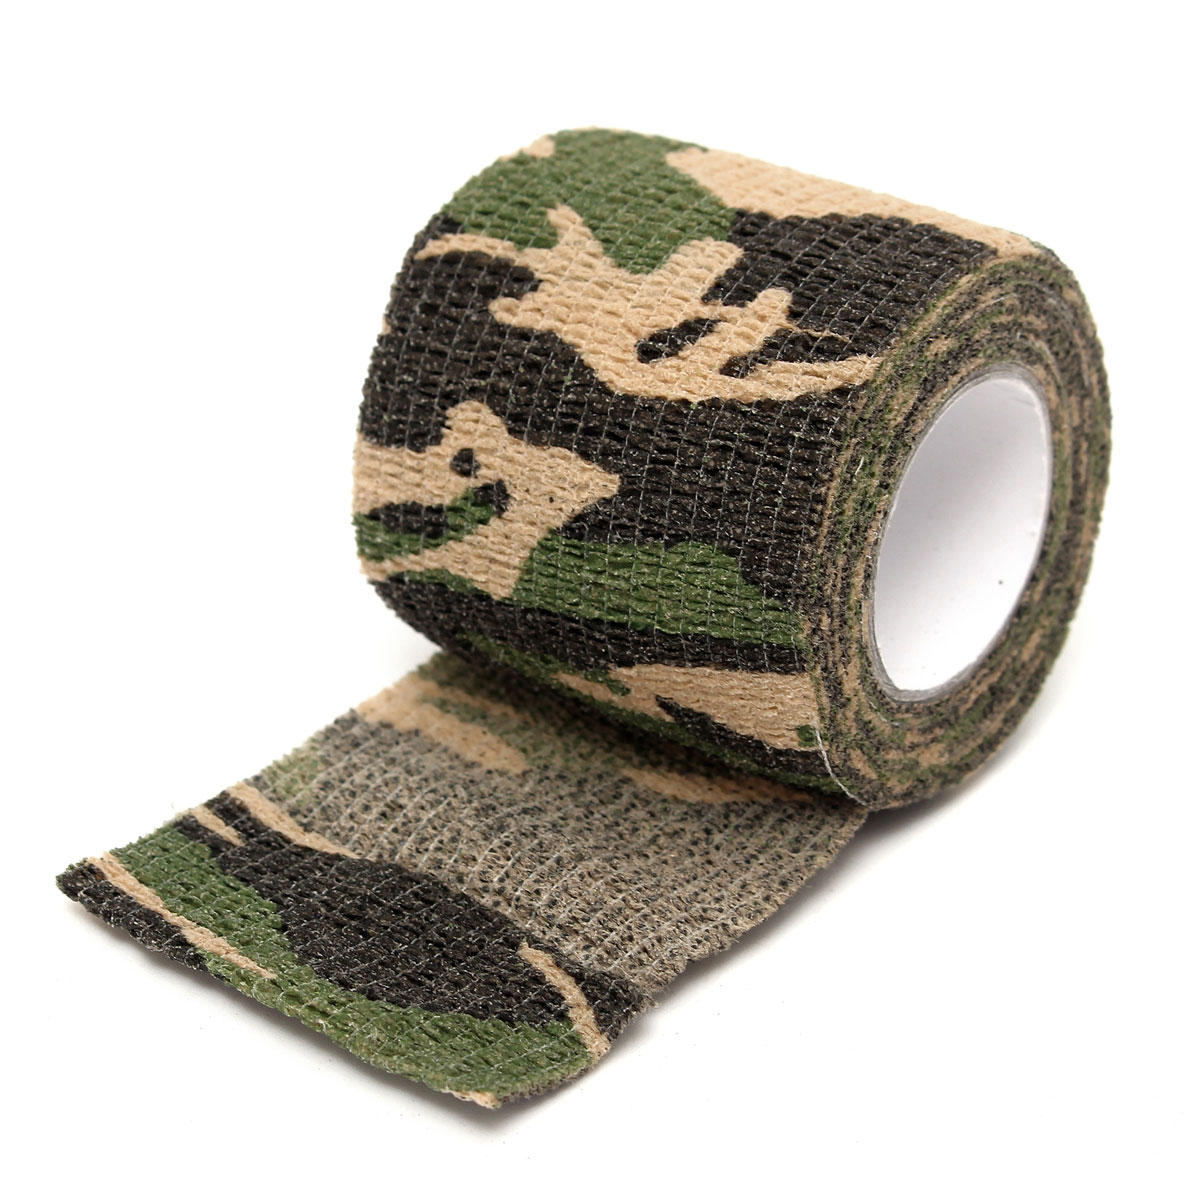 Anti-slip Tattoo Self-adhesive Elastic Bandage Handle Grip Cover Tools Stretchable Individuation Accessory Camouflage 5cm X 4.5m